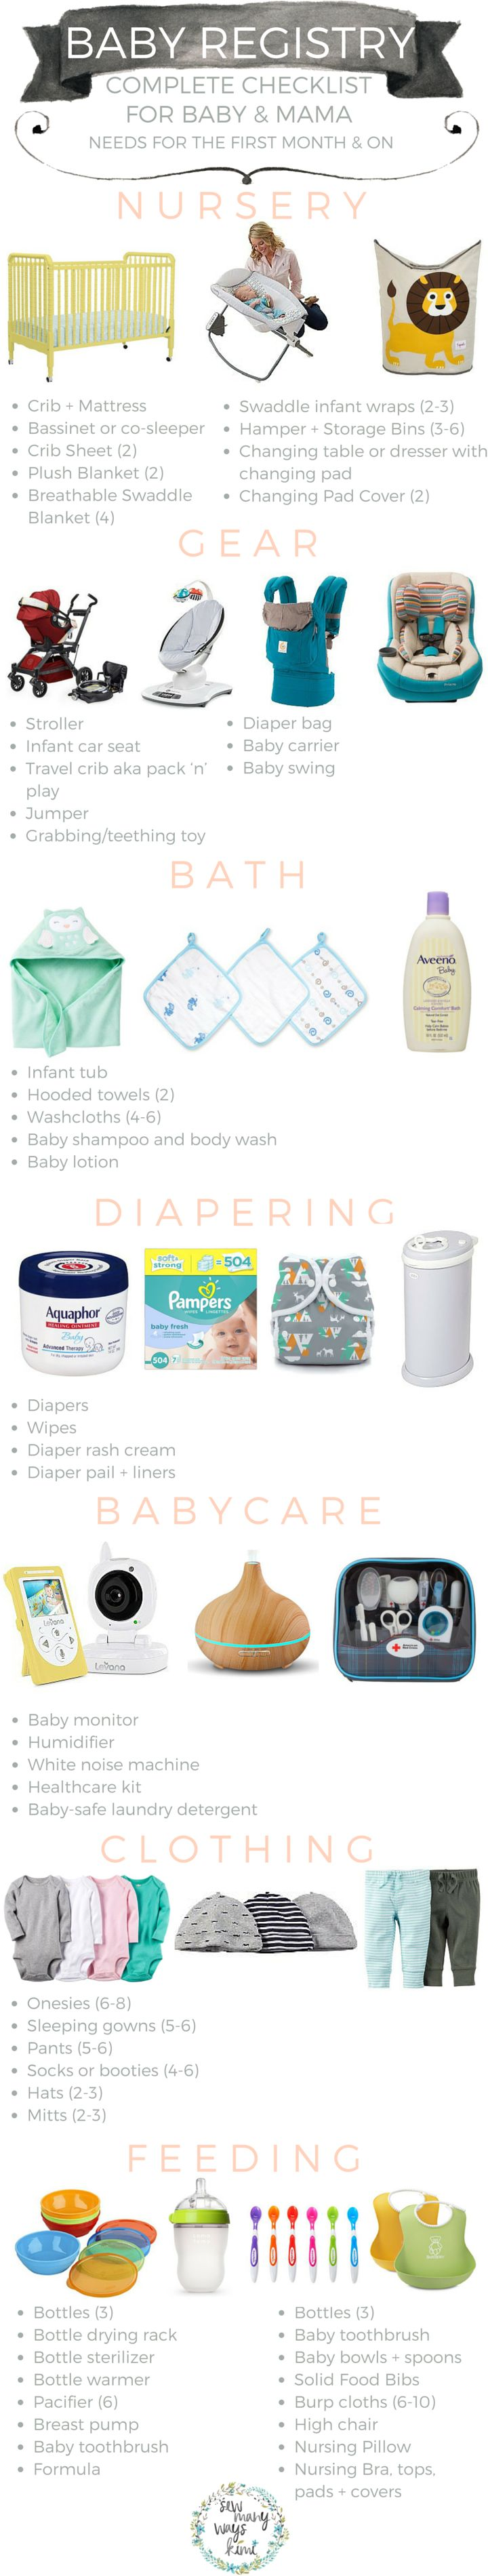 Baby Registry Checklist For The First Month And Beyond